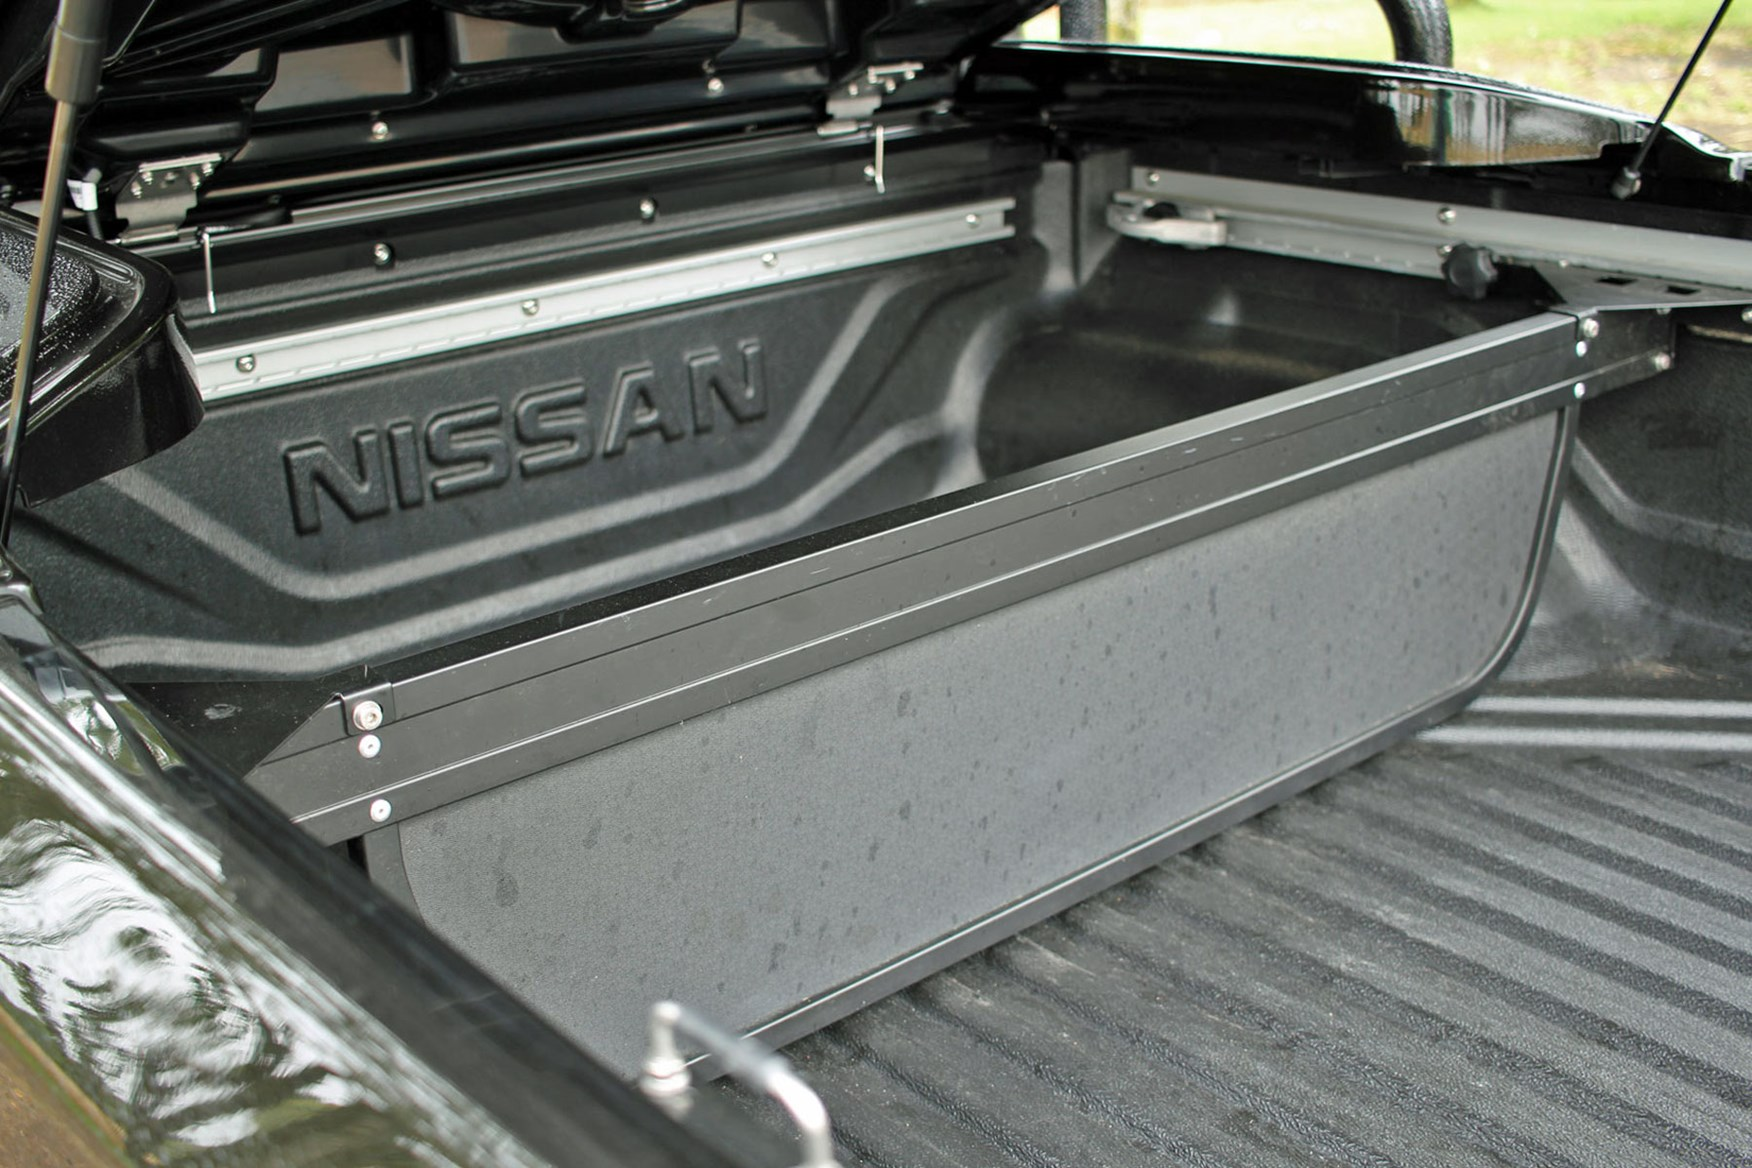 Nissan Navara Trek-1 review - load area with divider and liner